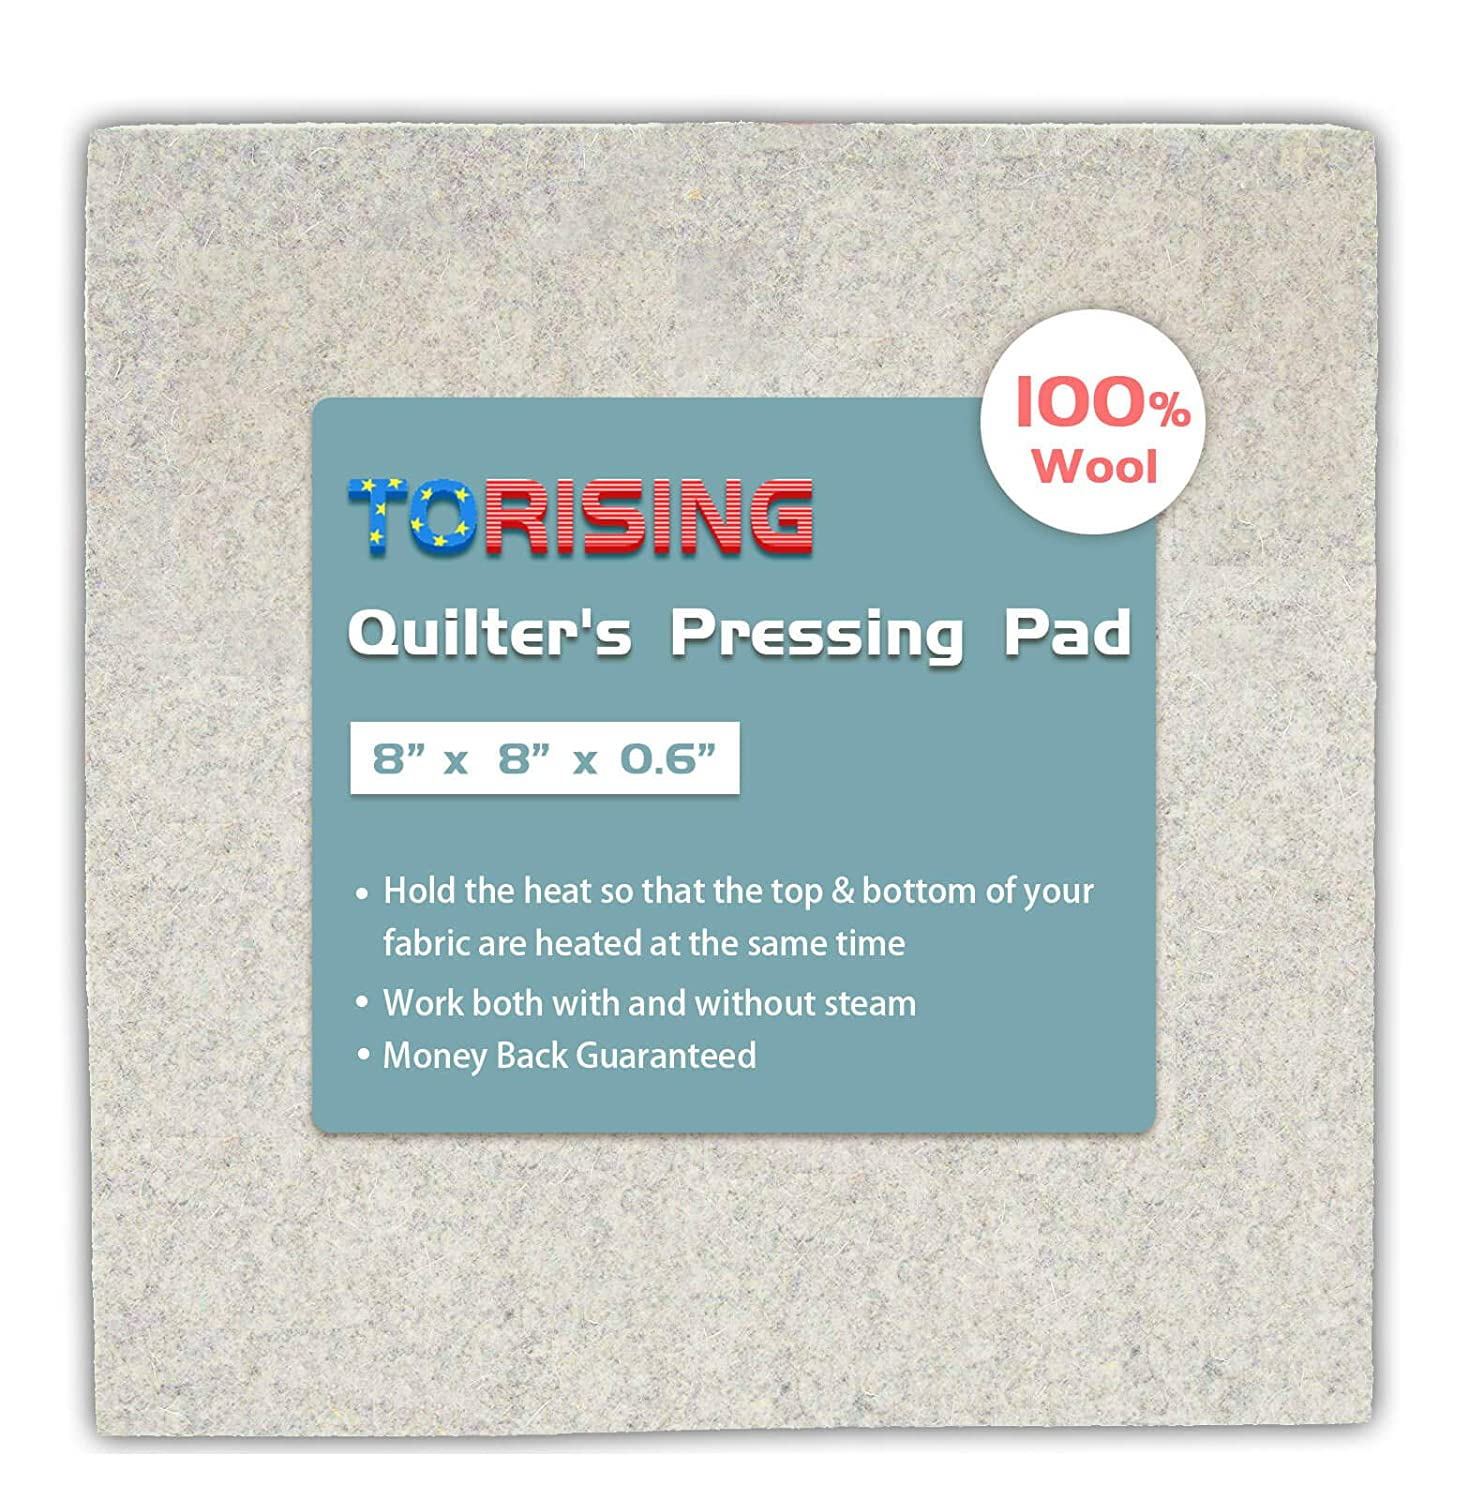 Wool Quilter's Pressing Pad Mat - 8